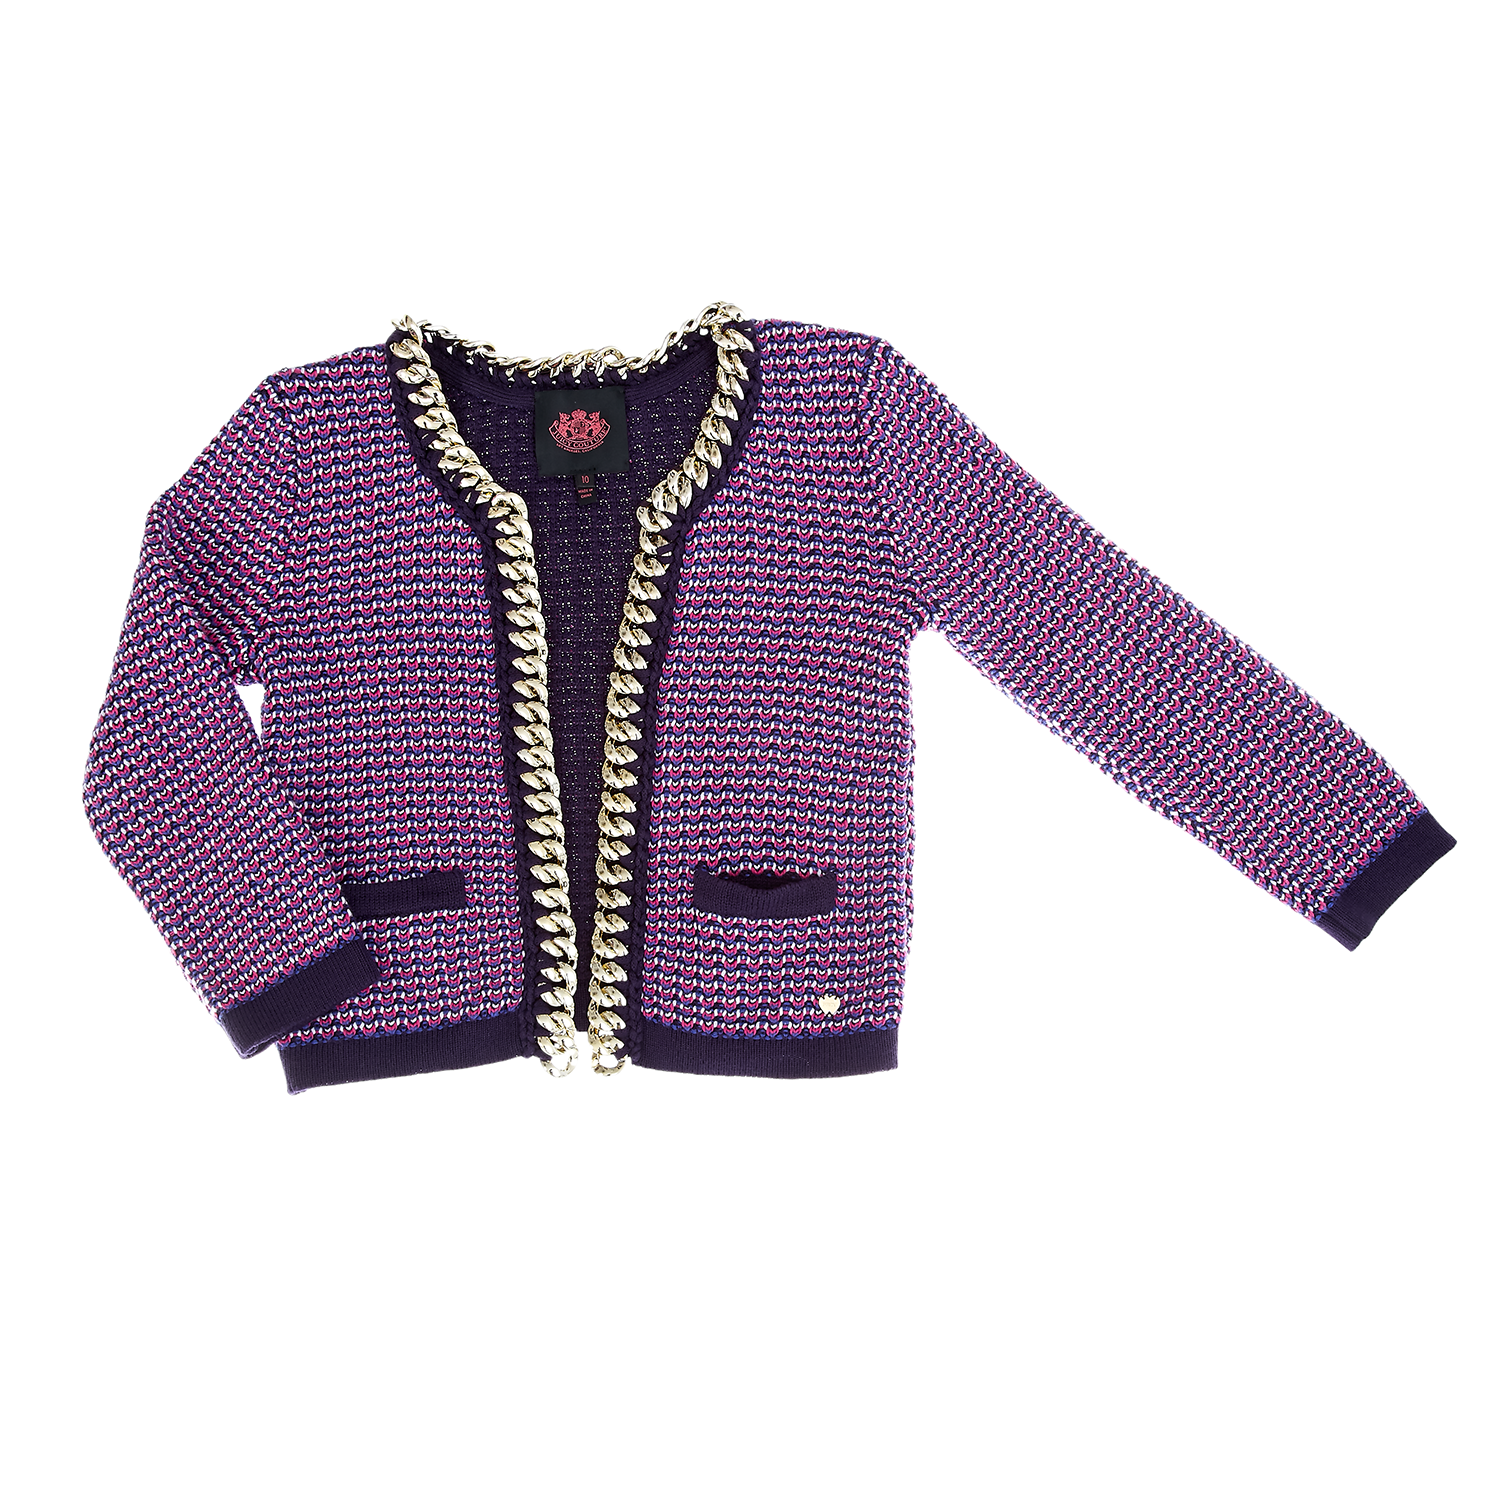 64f94a0a3ee JUICY COUTURE KIDS - Παιδική ζακέτα Juicy Couture μωβ ⋆ OaFashion.gr